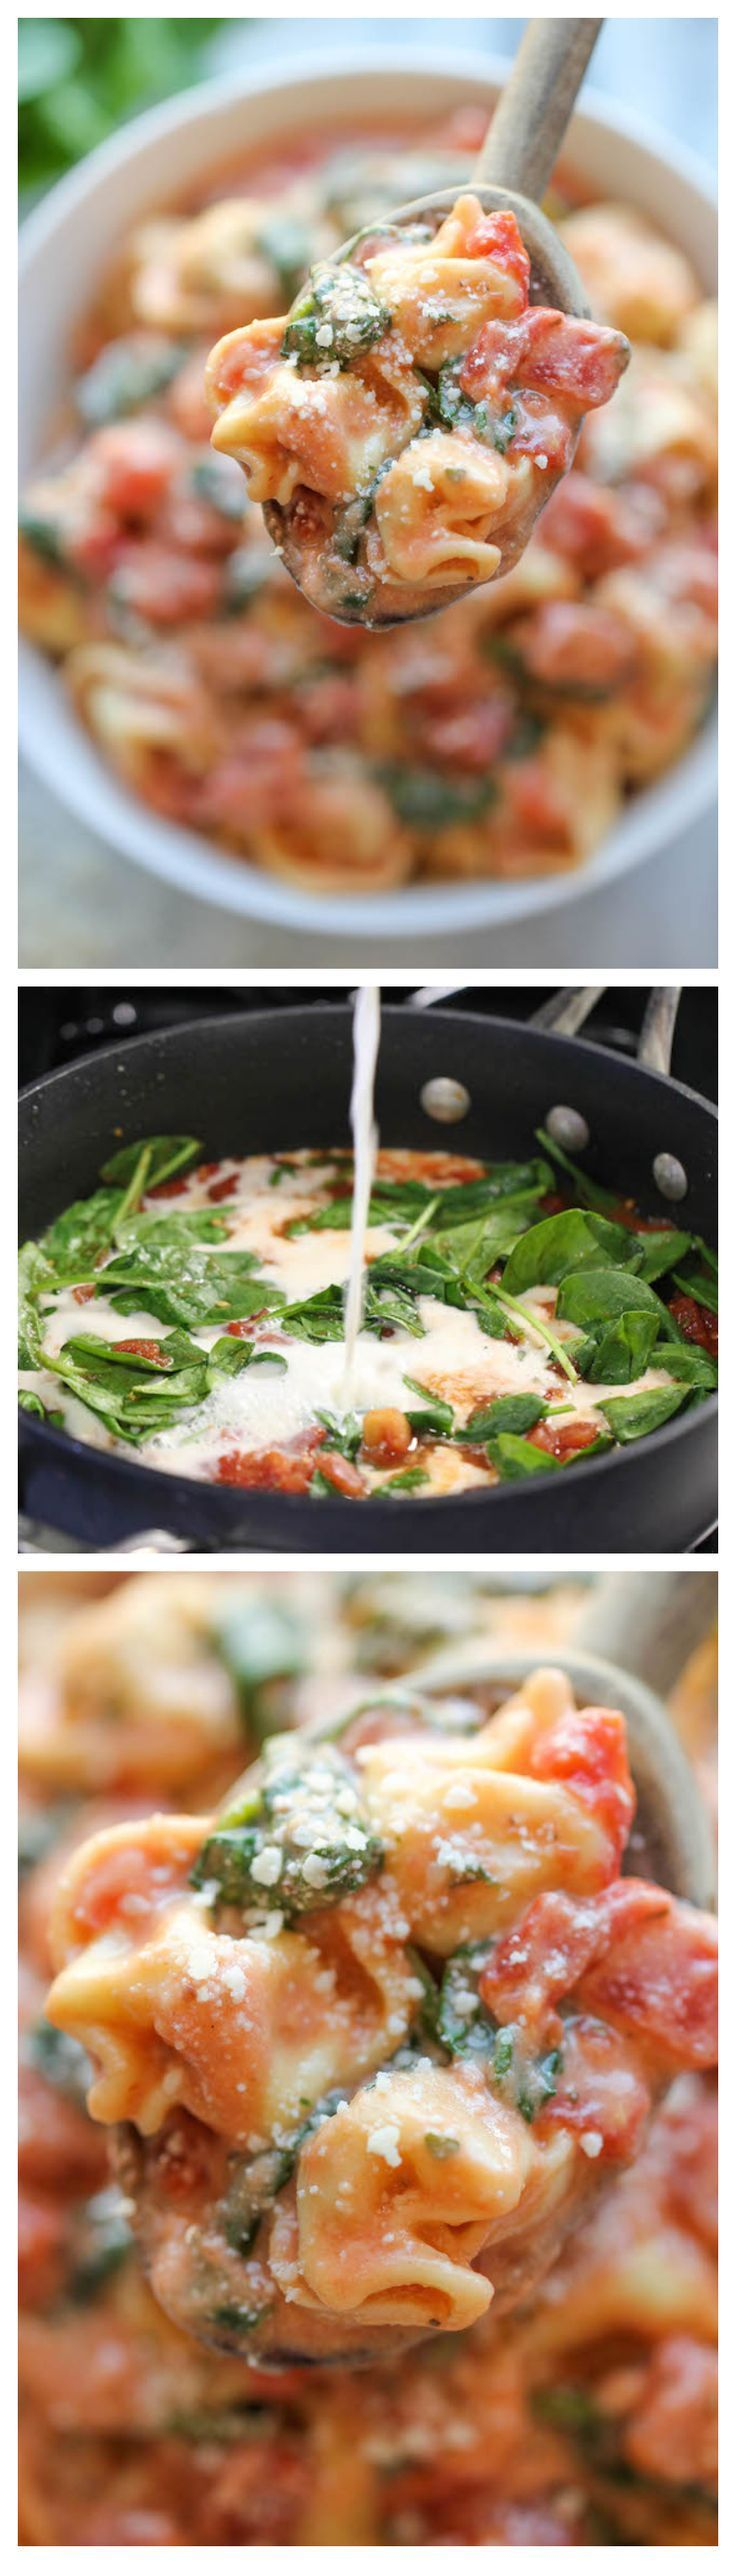 Spinach Tomato Tortellini - The most unbelievably creamy tortellini you will make in just 15 min.